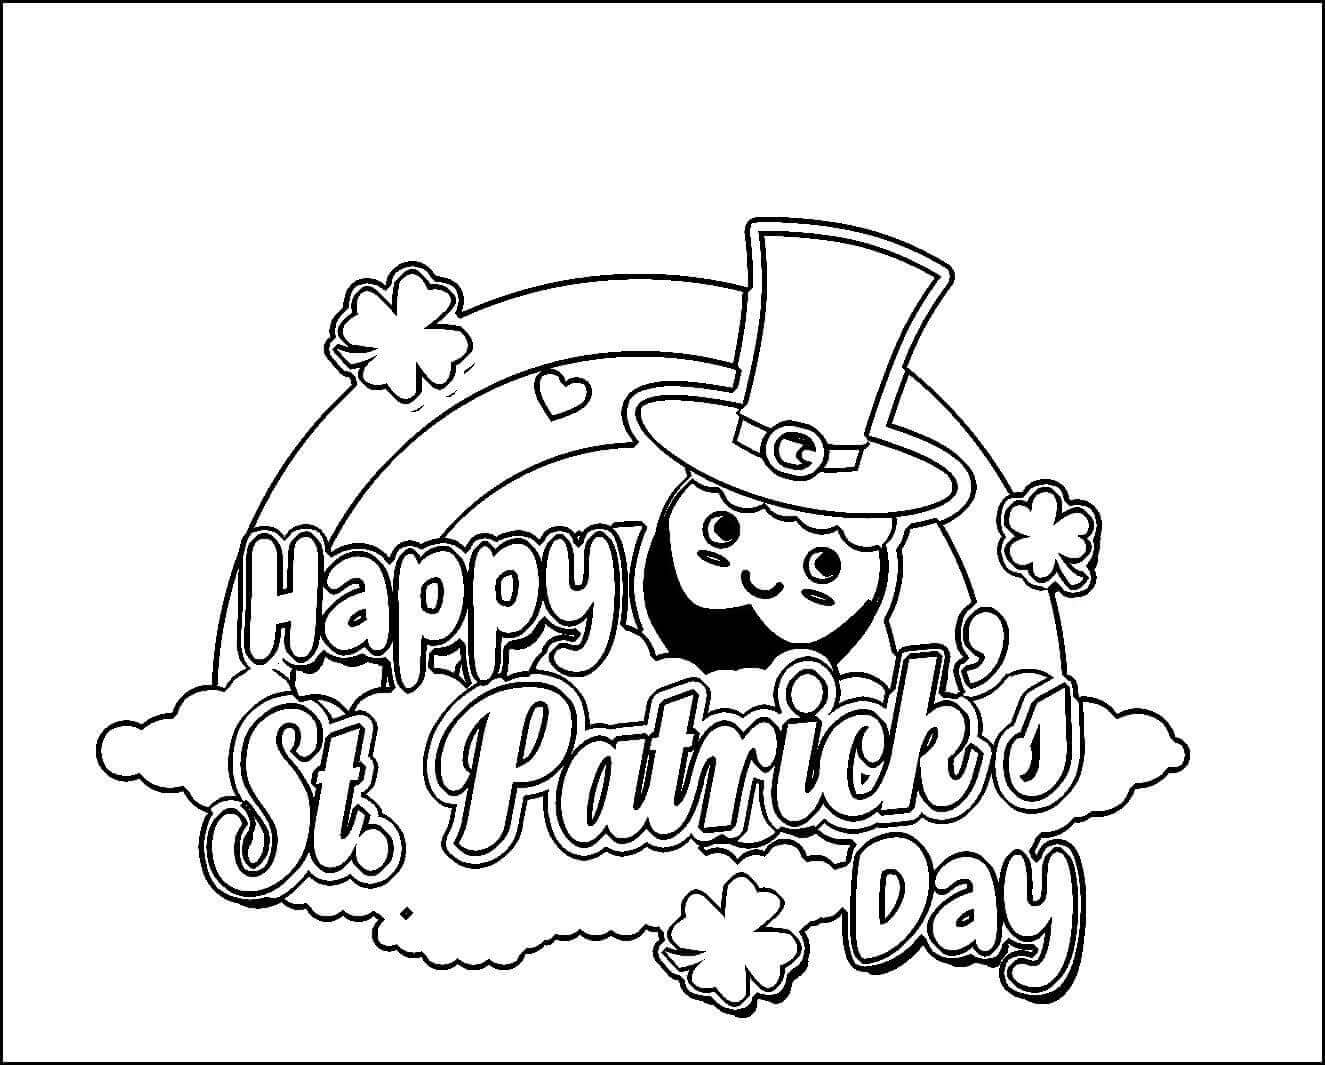 St Patricks Day 2021 coloring pages